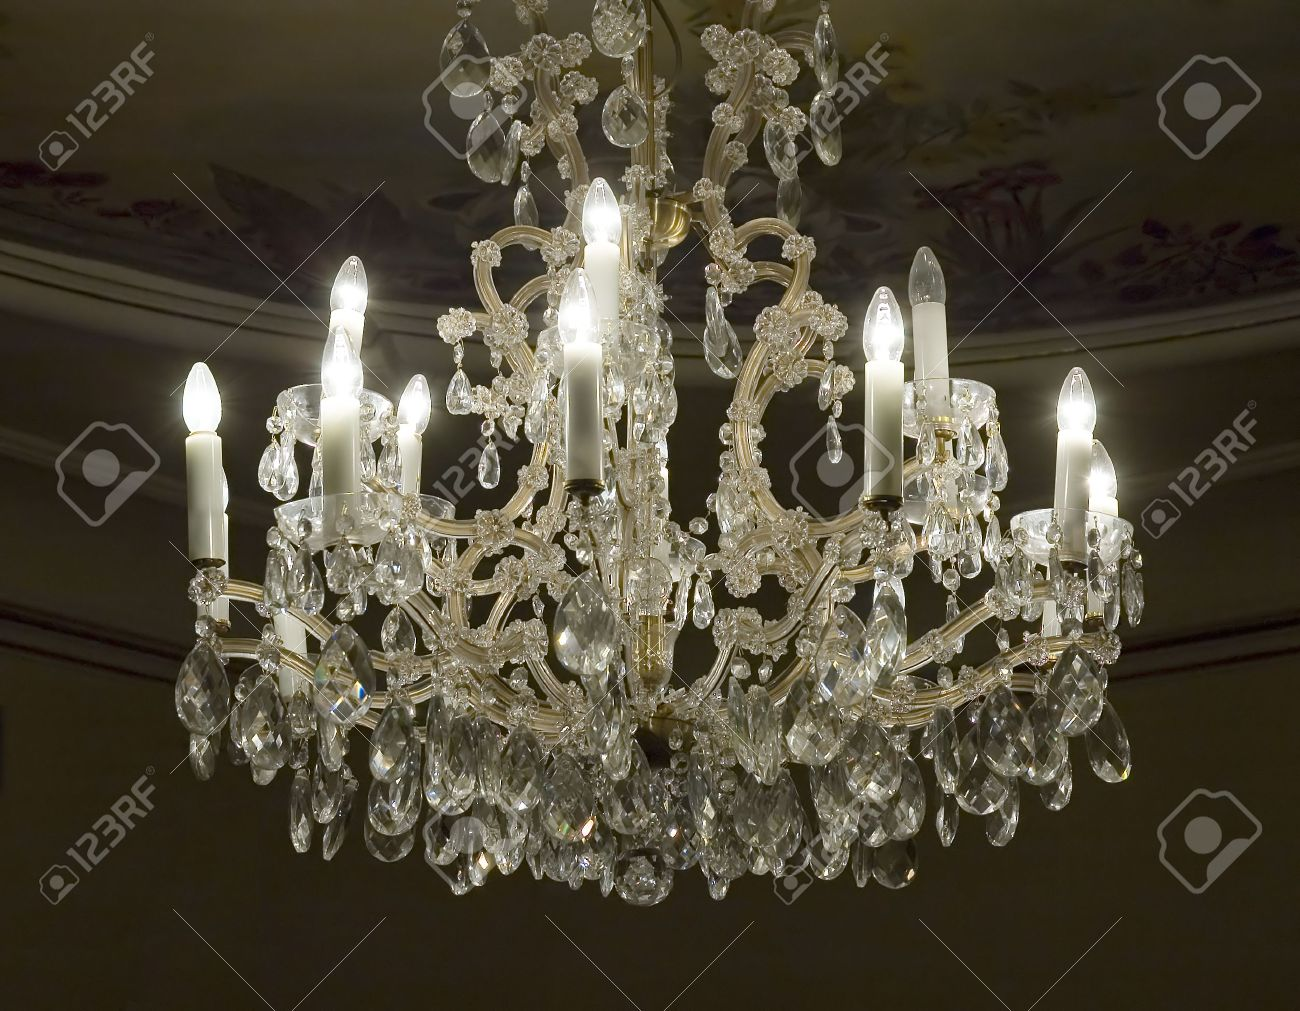 Antique crystal chandelier Stock Photo - 3232189 - Antique Crystal Chandelier Stock Photo, Picture And Royalty Free